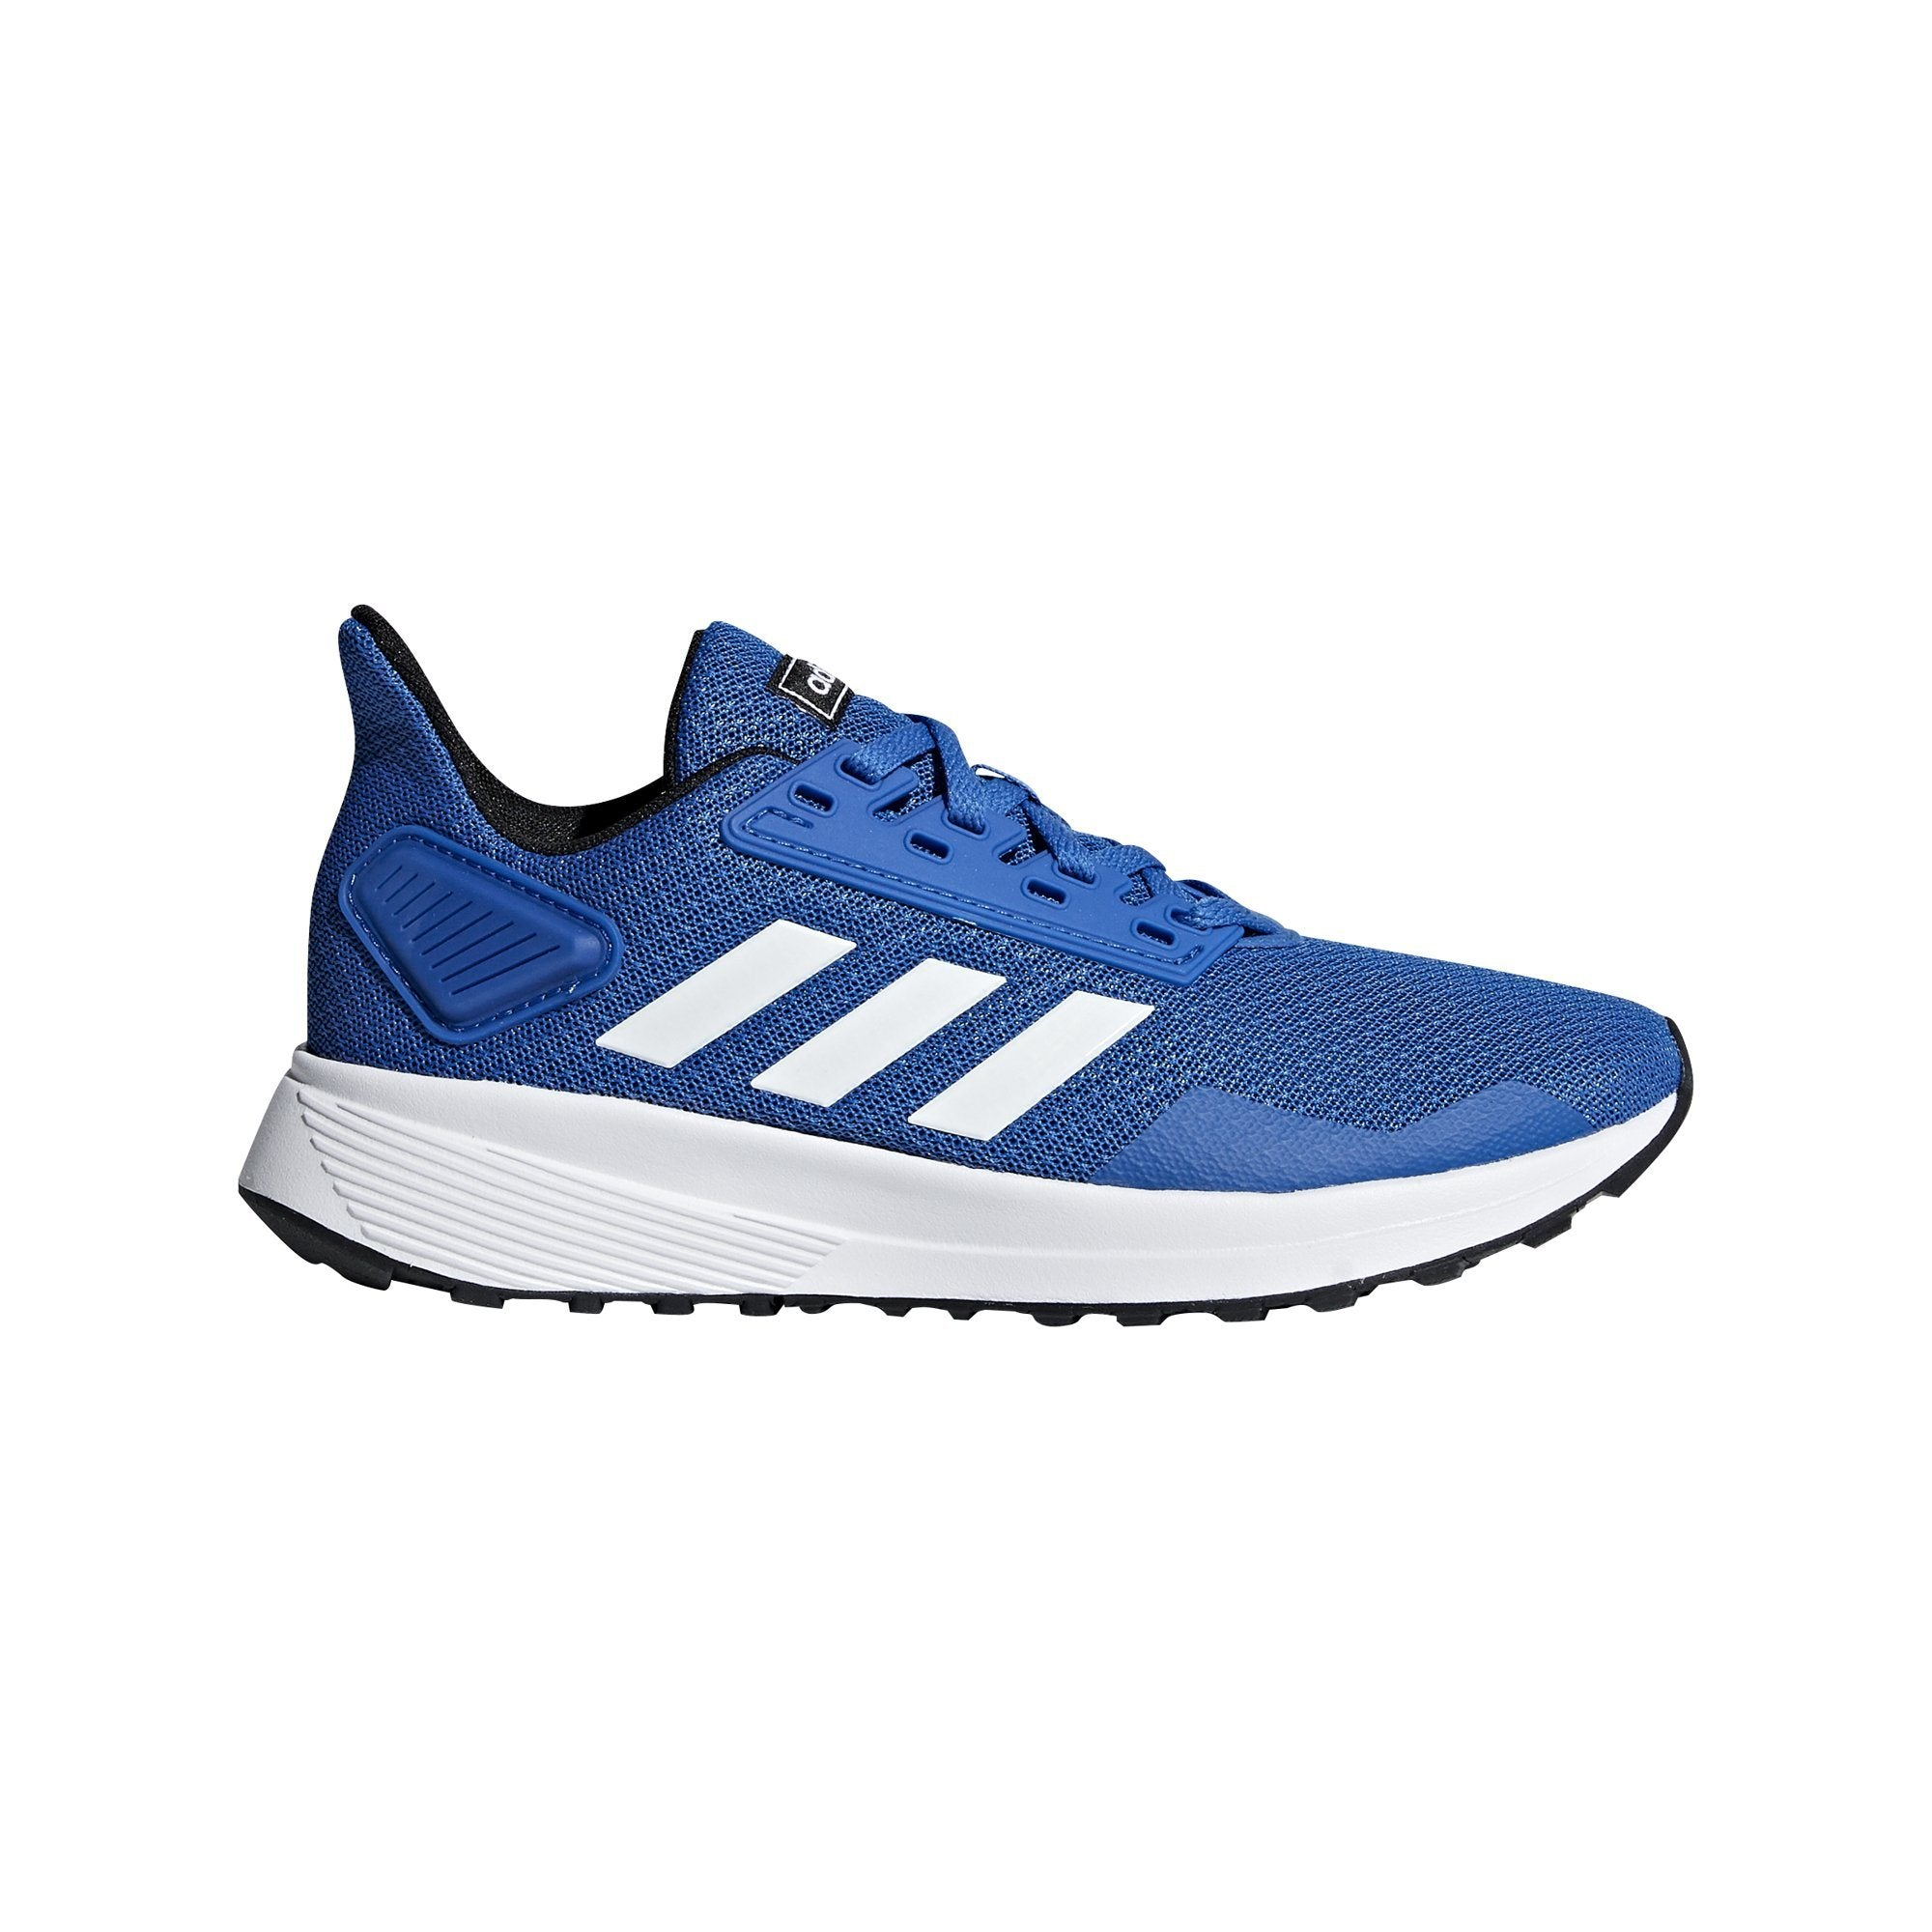 Adidas Kids Duramo 9 - Blue/Ftwr White/Core Black SP-Footwear-KidsBoys Adidas